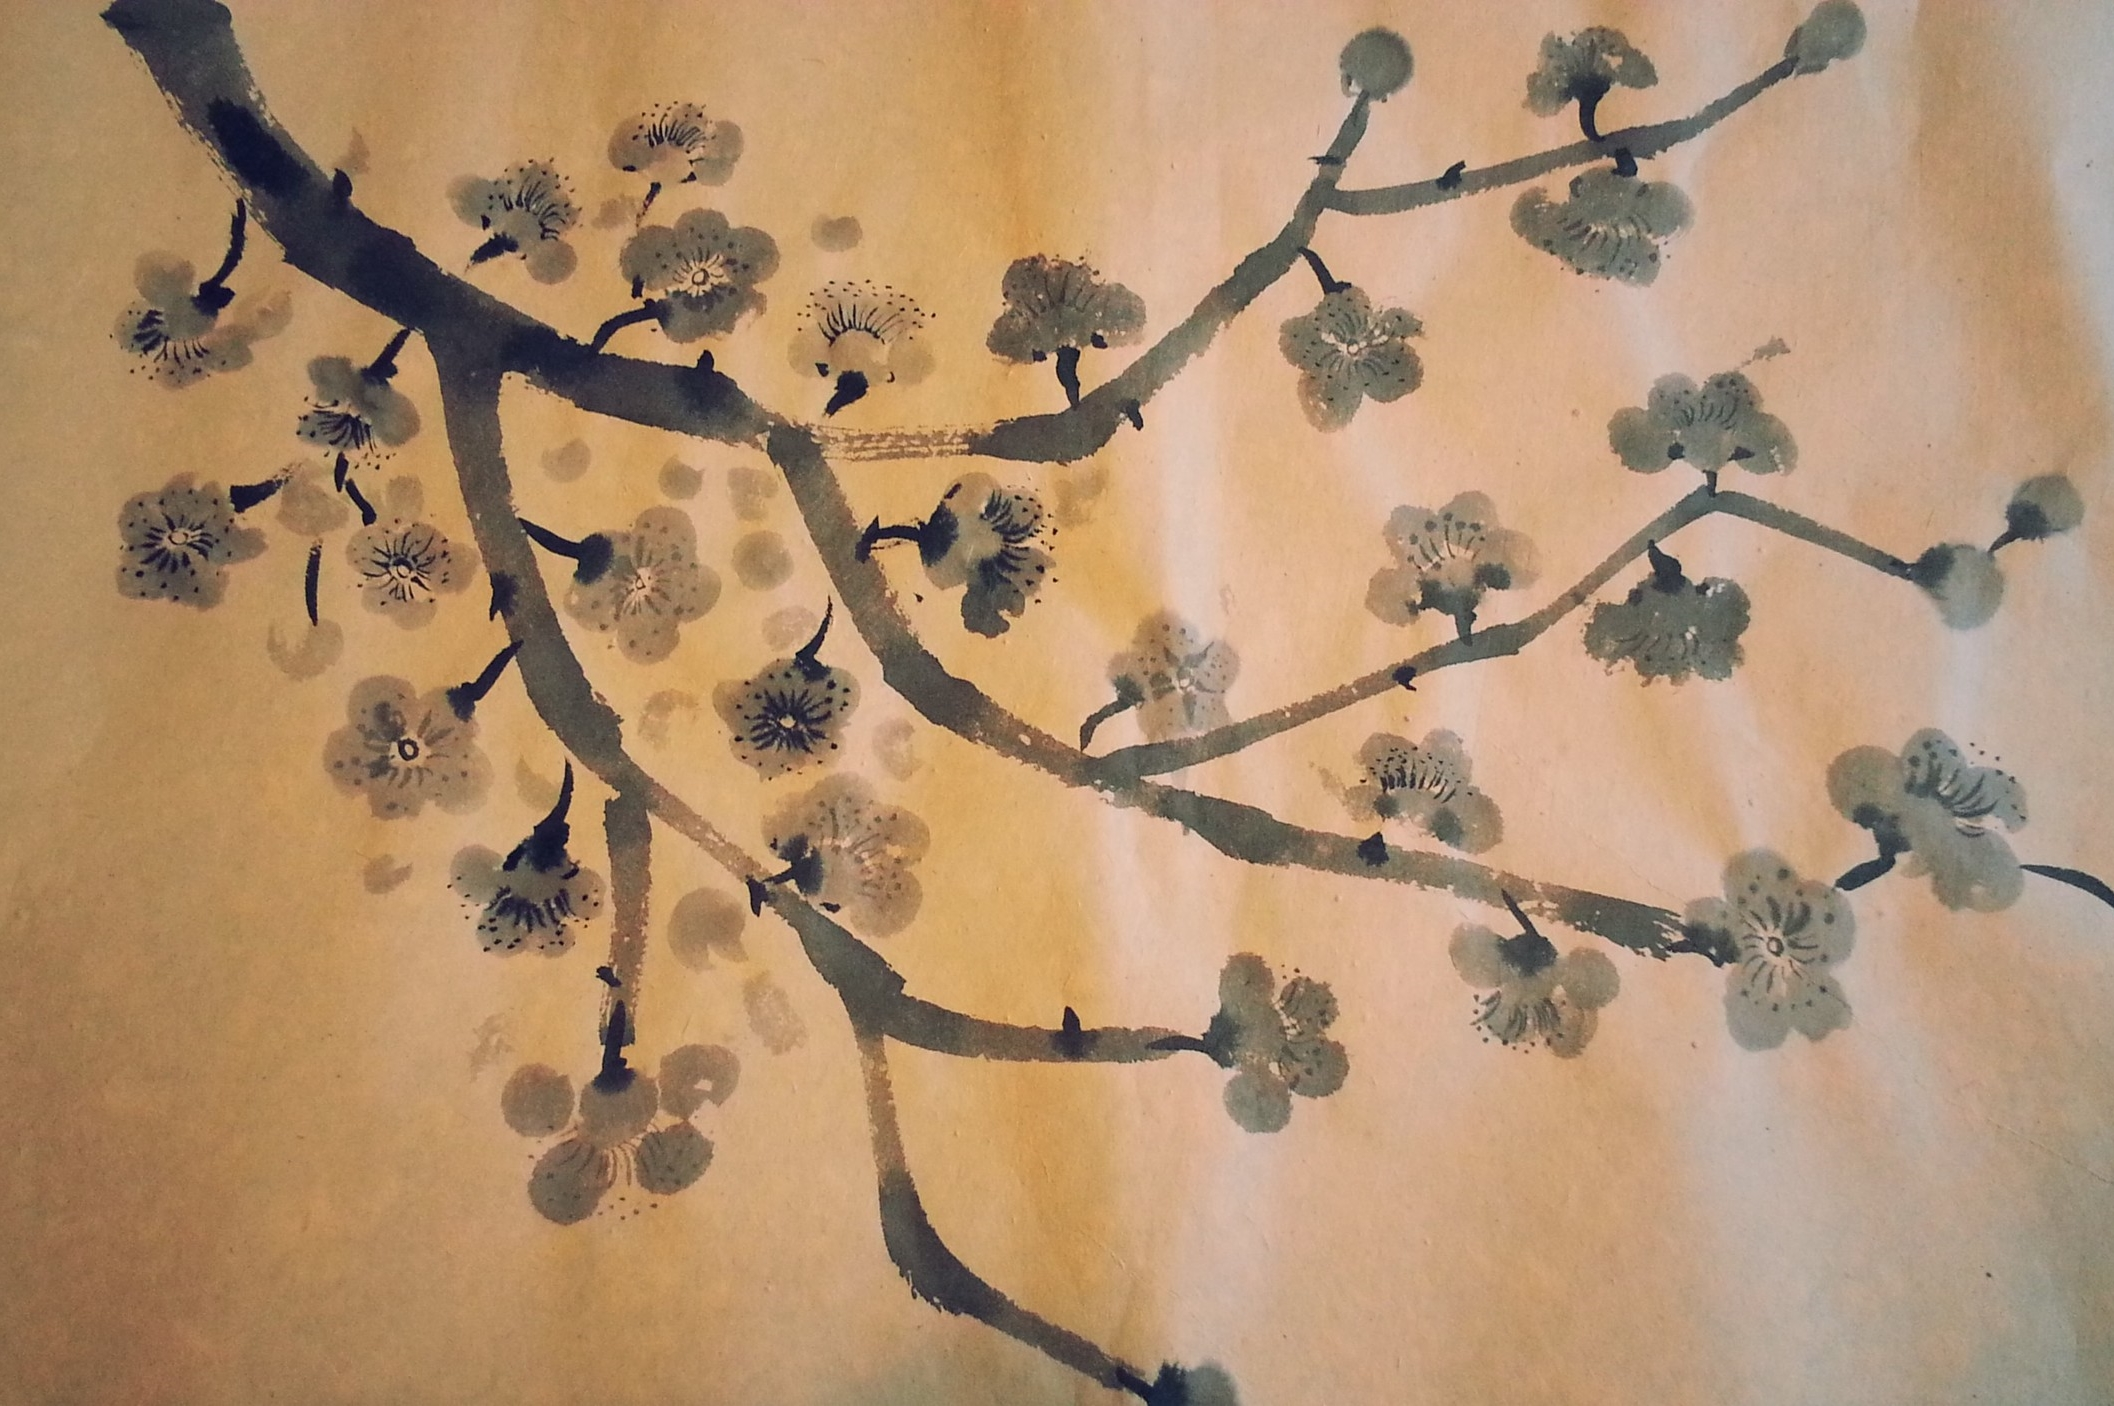 Cherry Blossom ~ Chinese Art, Asian Art, Pattern Design, Shaheen Kasmani